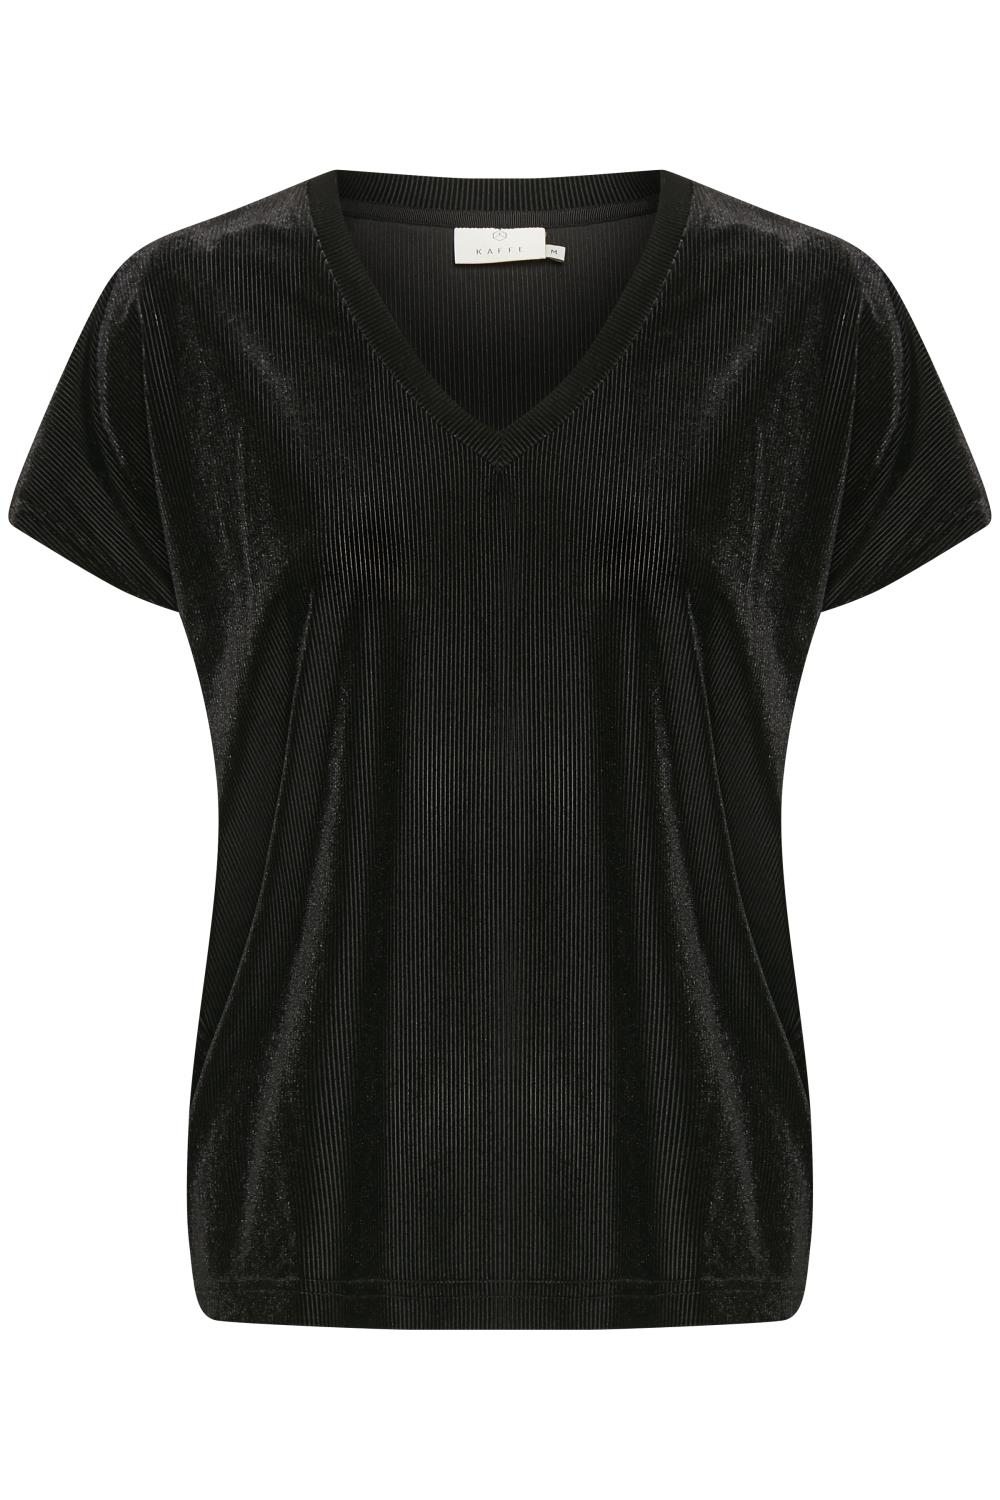 Kaffe Collin velvet blouse, black deep